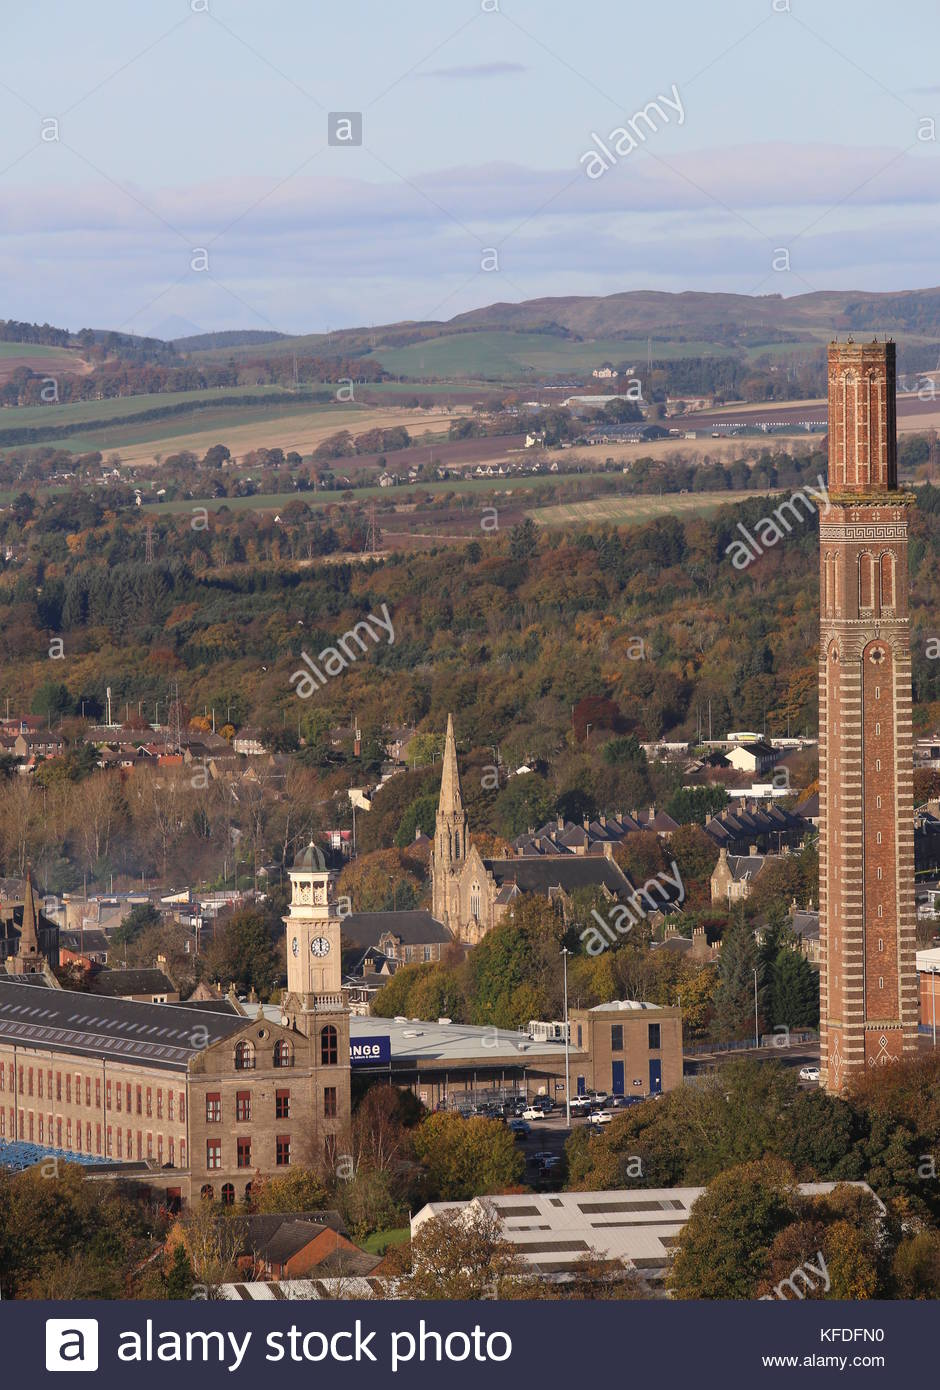 Elevated view of Cox's stack chimney Lochee Dundee Scotland  October 2017 - Stock Image